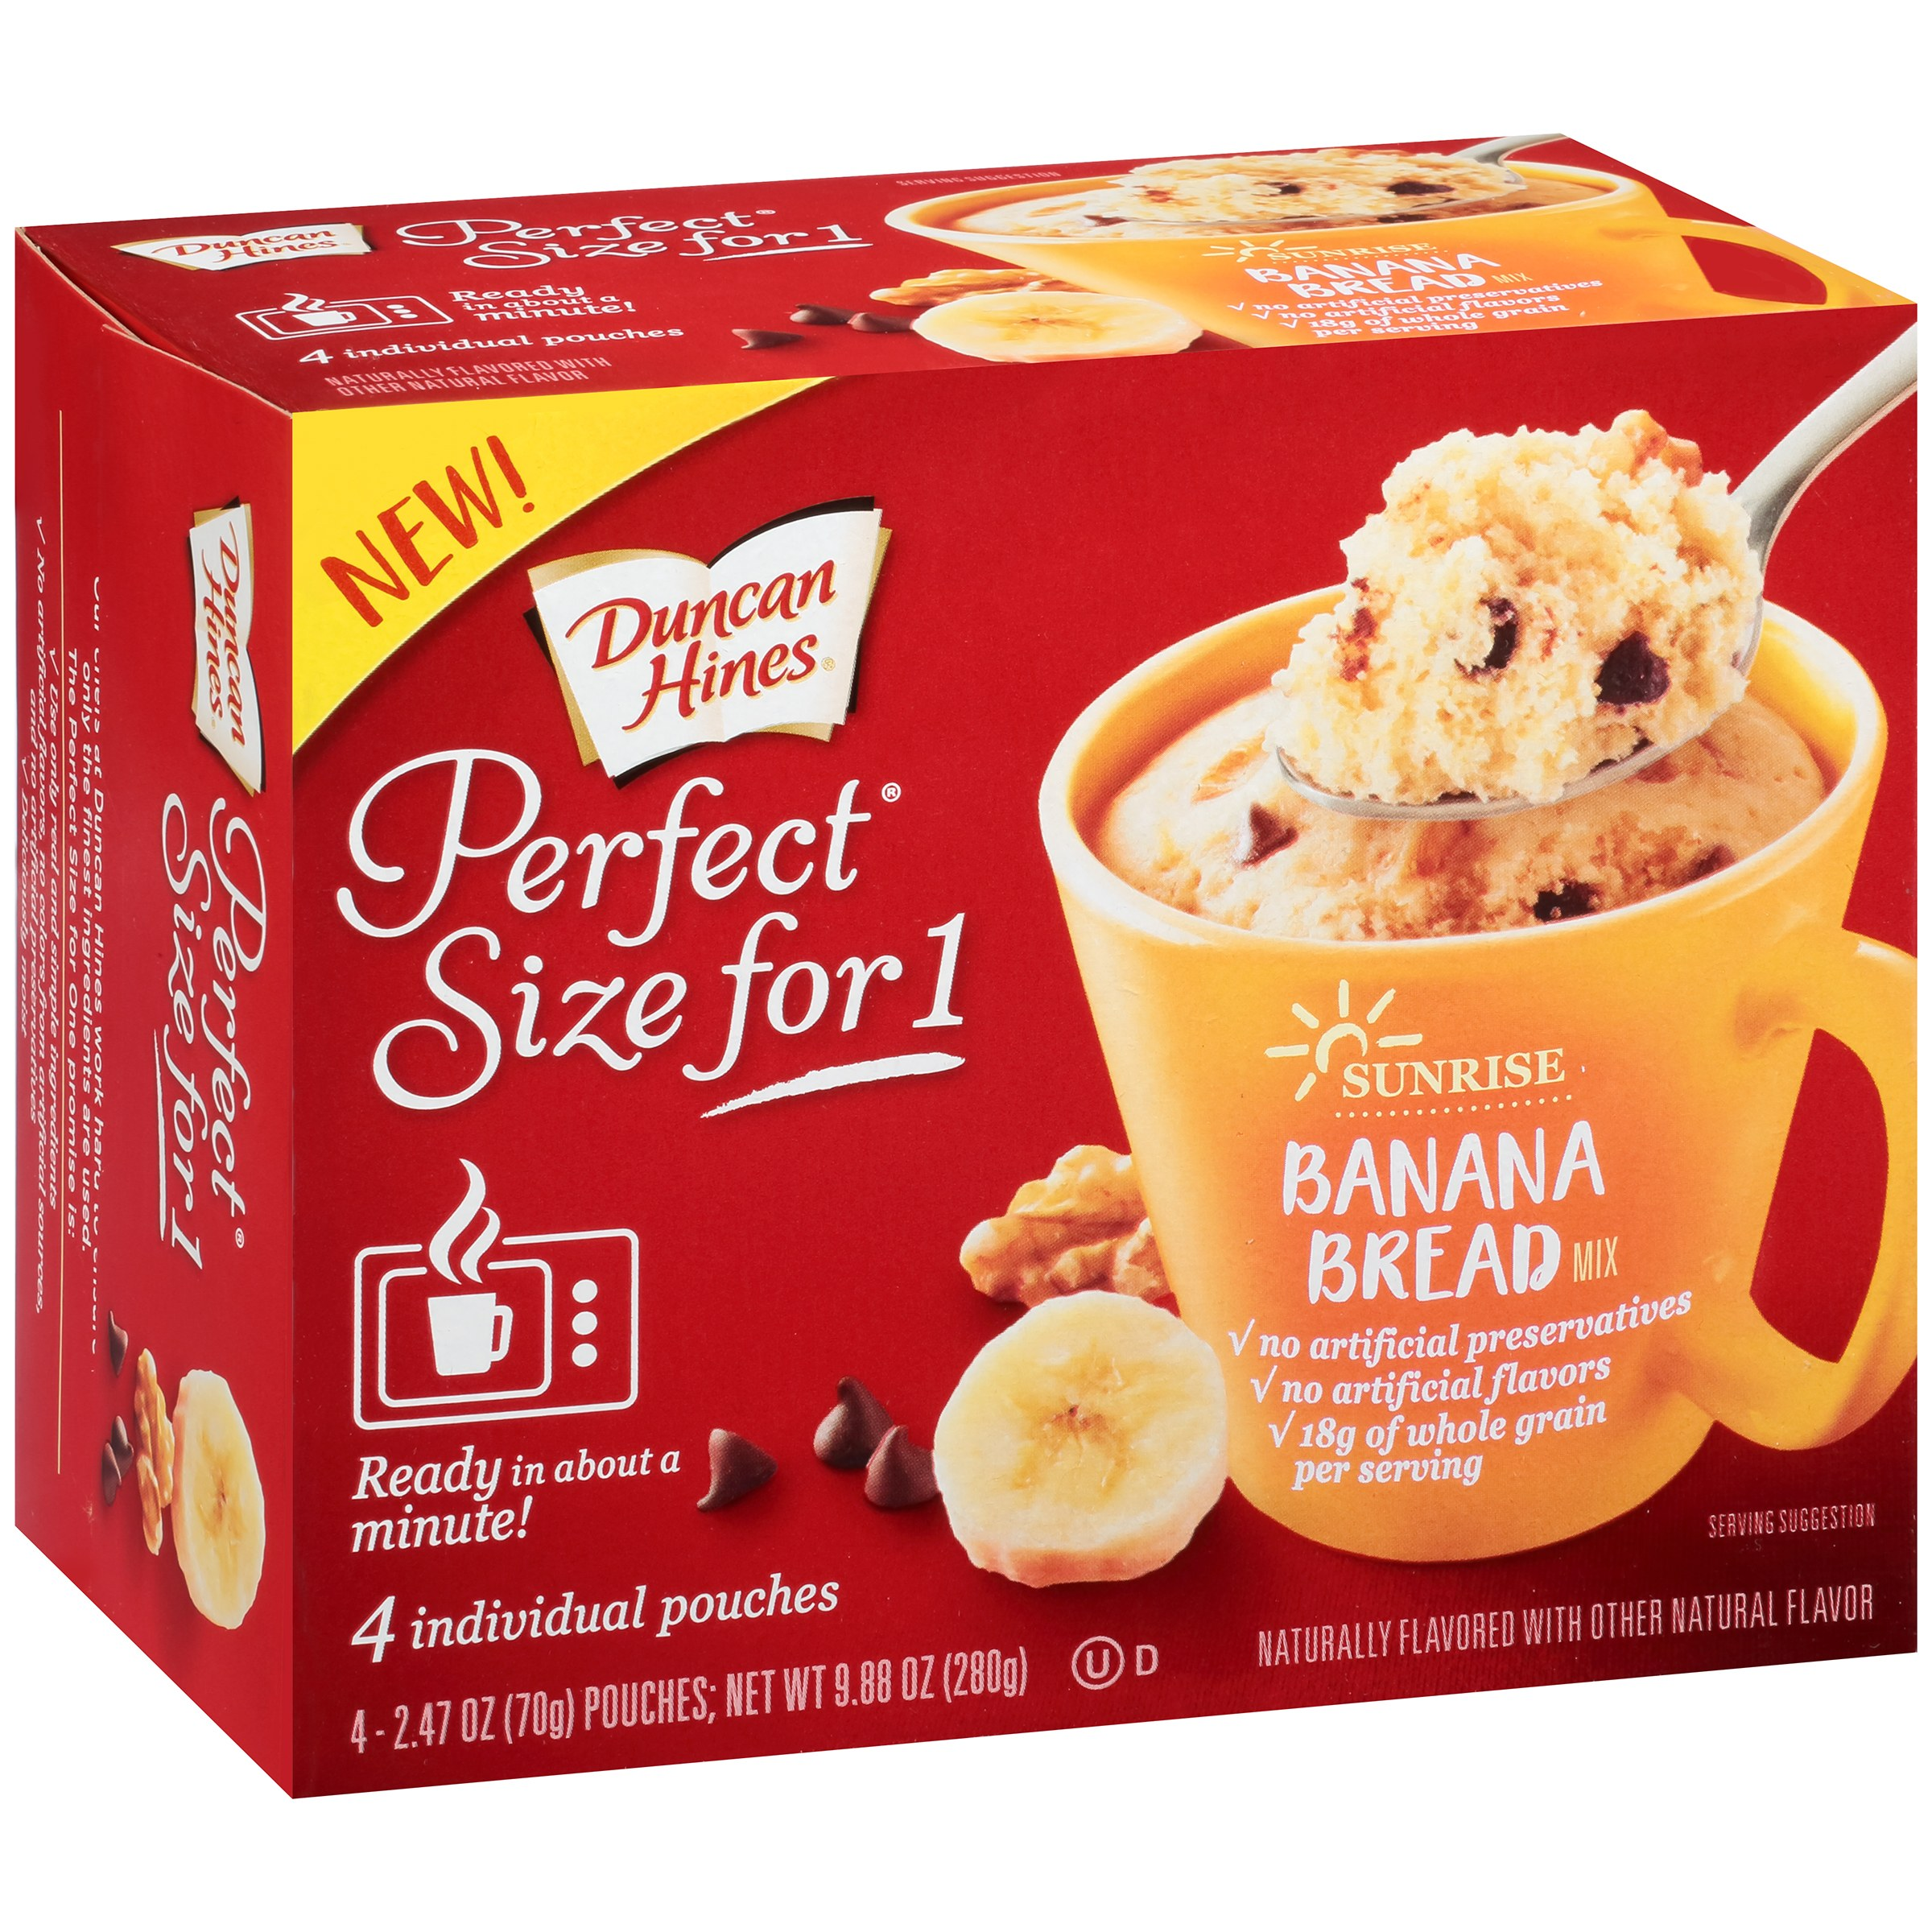 Duncan Hines Perfect Size for 1 Sunrise Banana Bread Mix 4 ct Box by Pinnacle Foods Group LLC